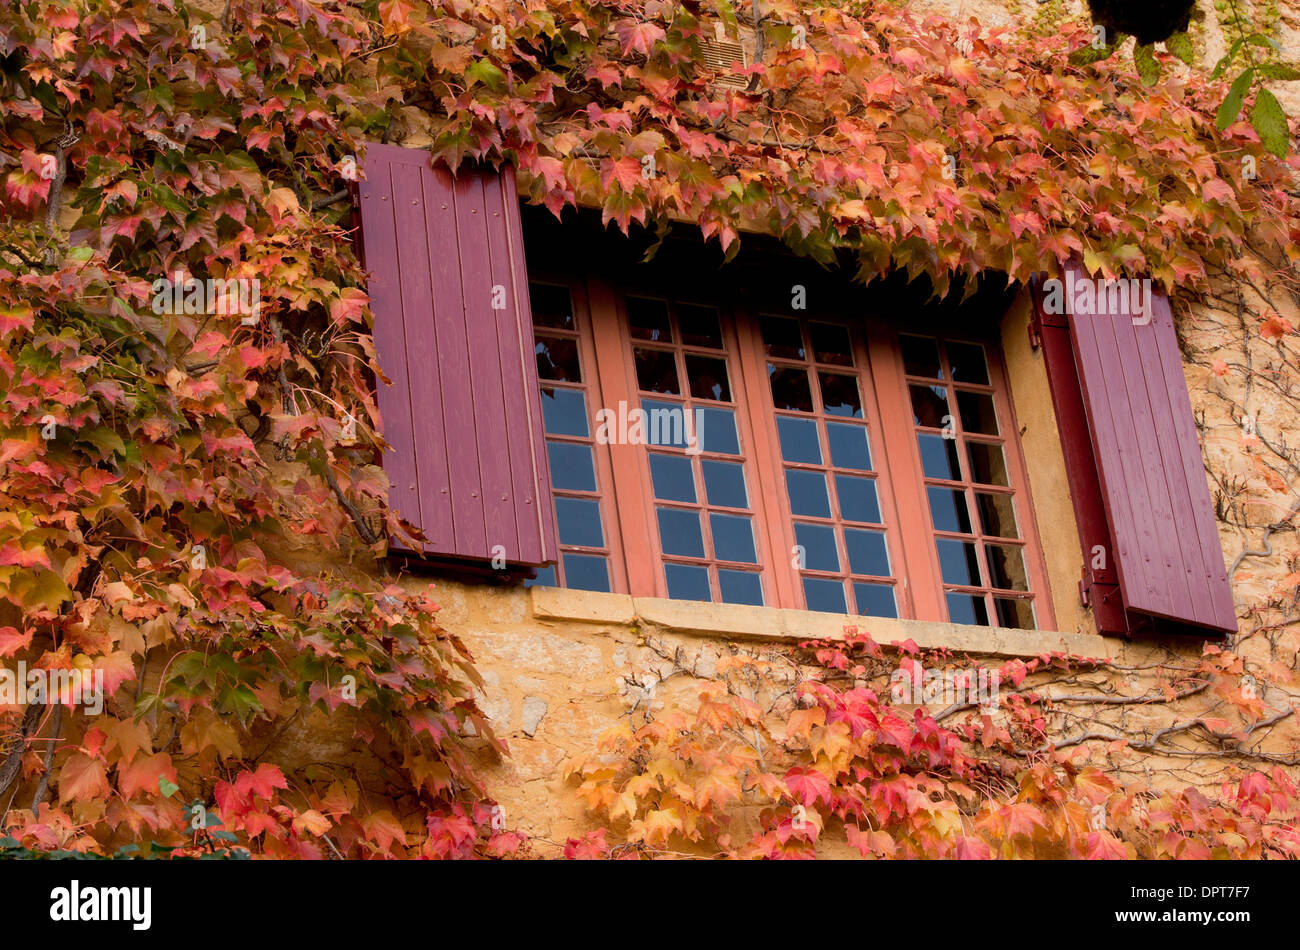 Shuttered windows with Virginia Creeper in autumn, La Roque-Gageac, Dordogne, France - Stock Image